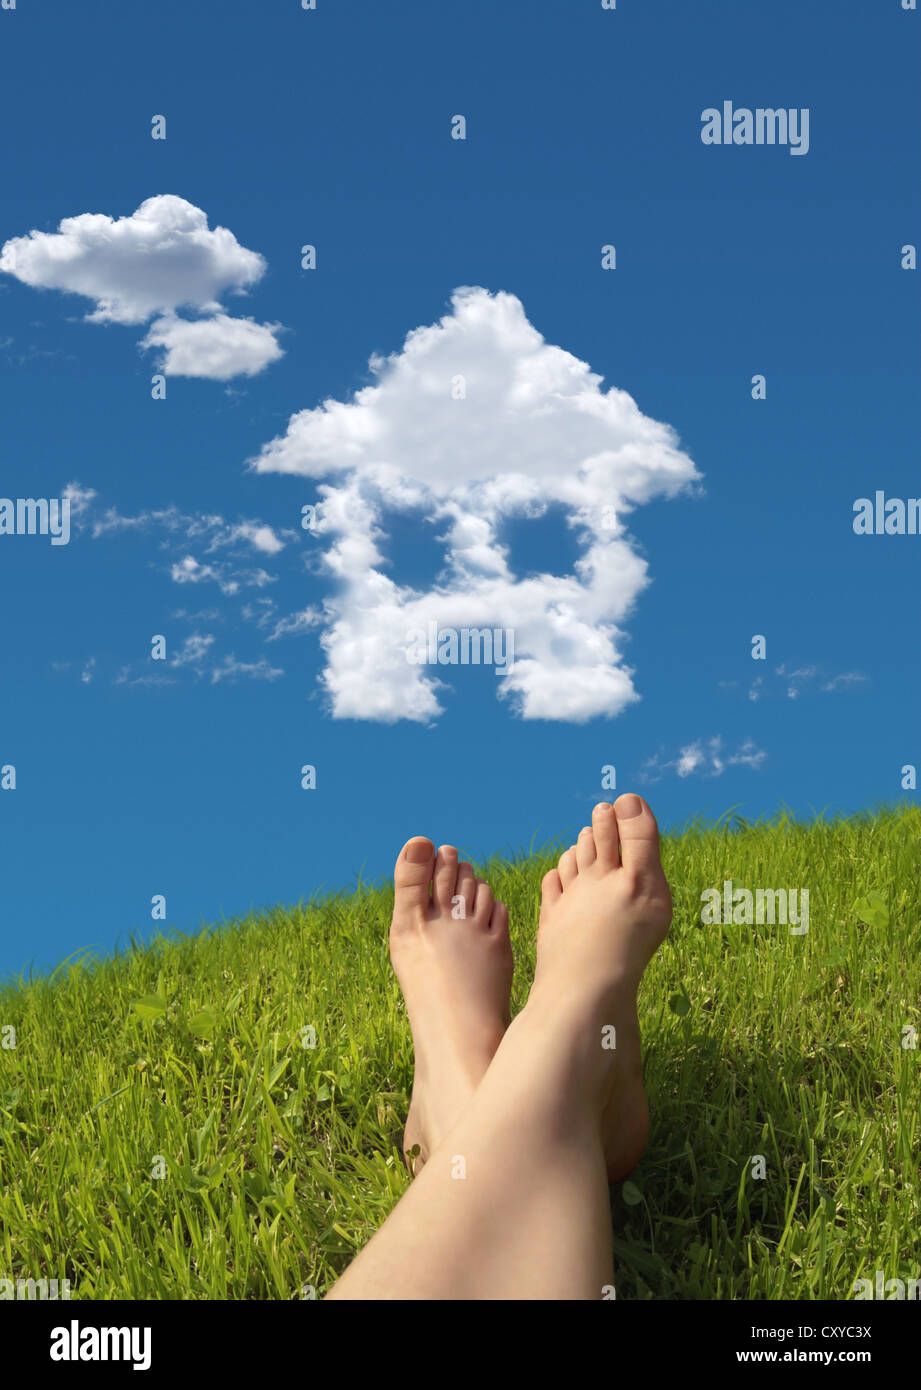 Woman lying on a meadow, detail of feet with a house-shaped cloud formation in the sky - Stock Image